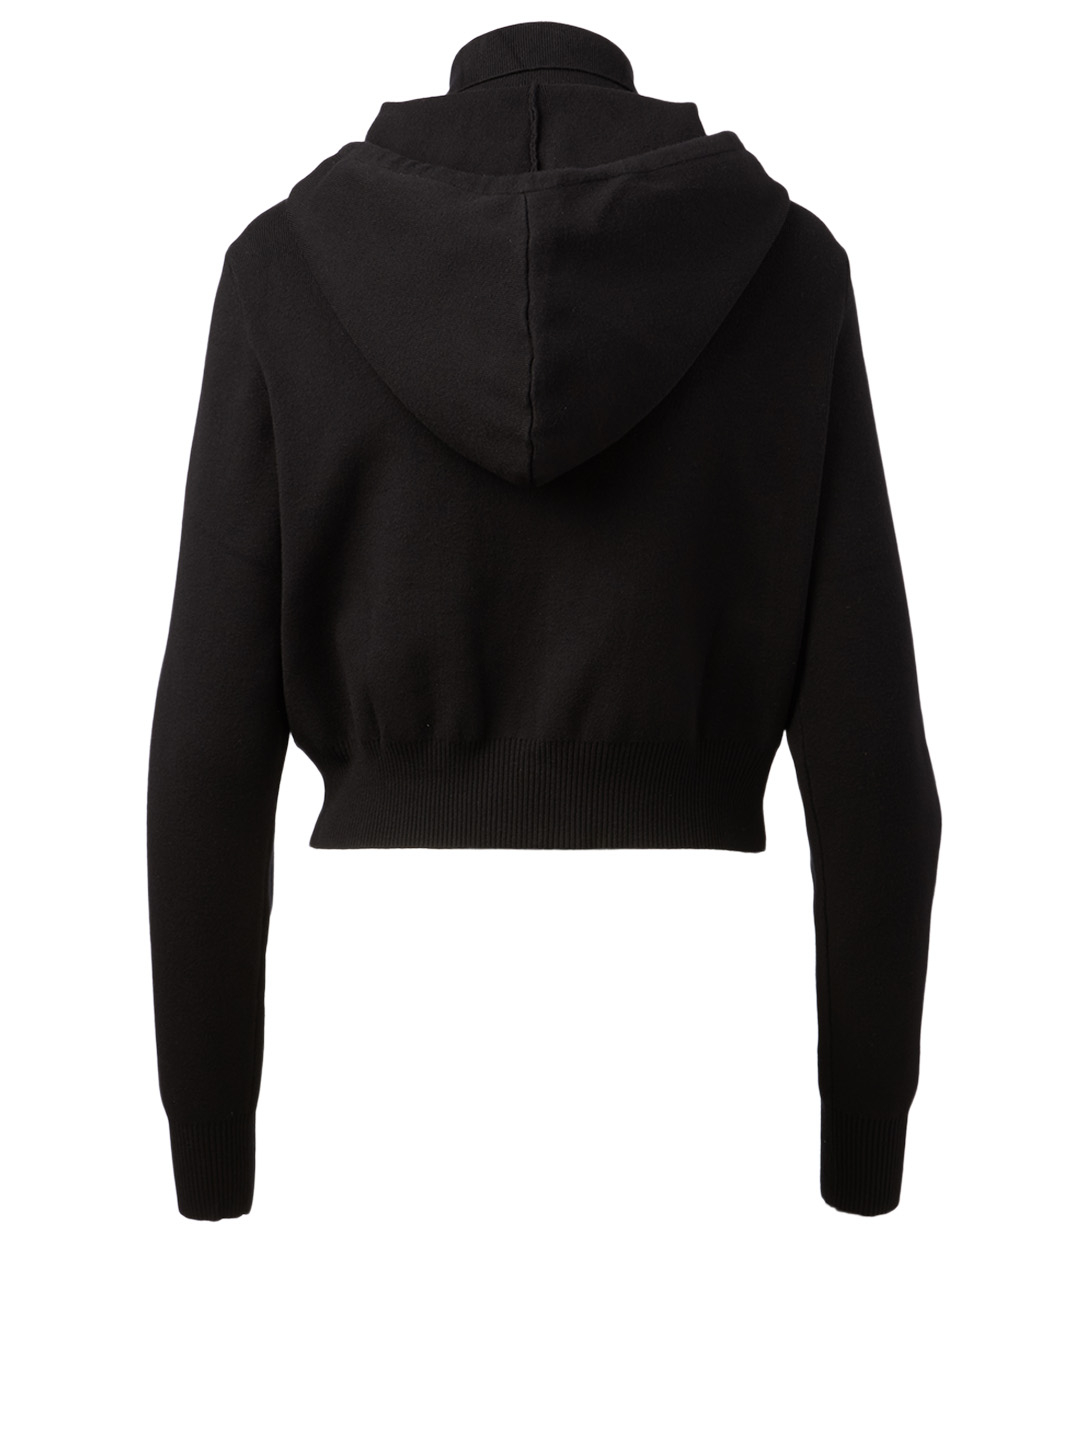 LIVE THE PROCESS Cropped Zip Hoodie Women's Black